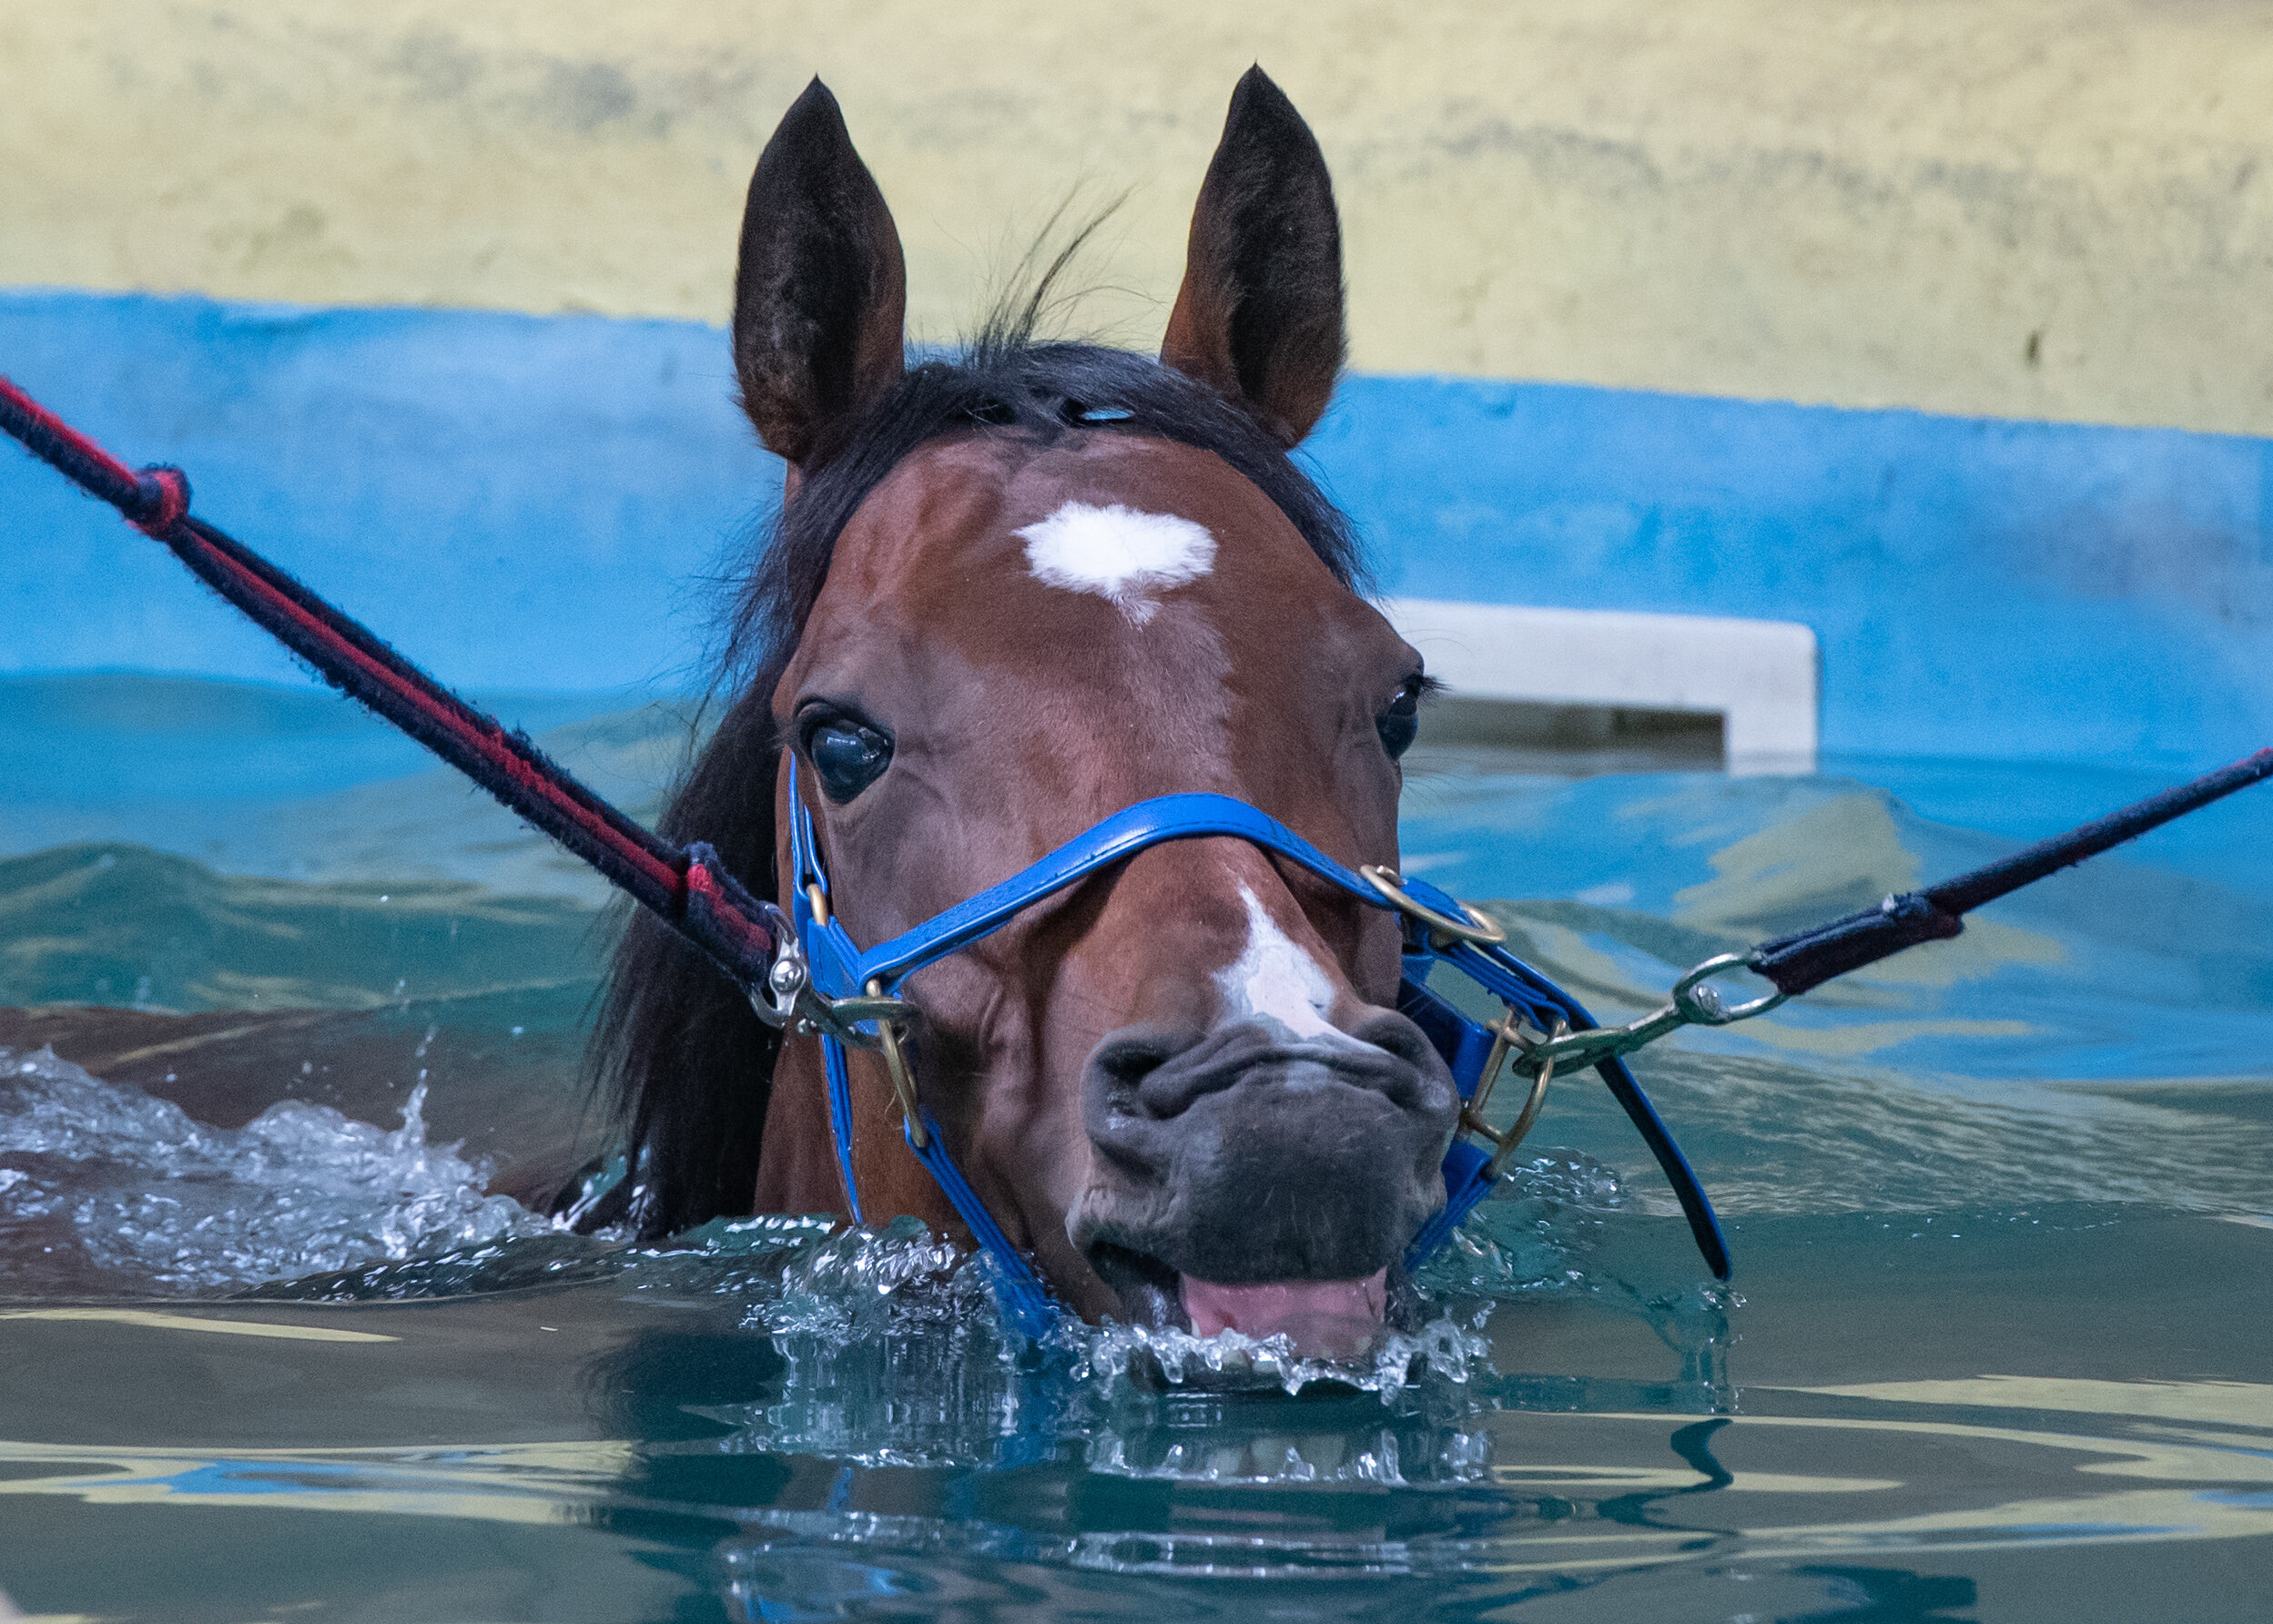 Hydrotherapy for performance - the benefits of water based conditioning - hydrotherapy as a mechanism for enhancing performance in the racehorse